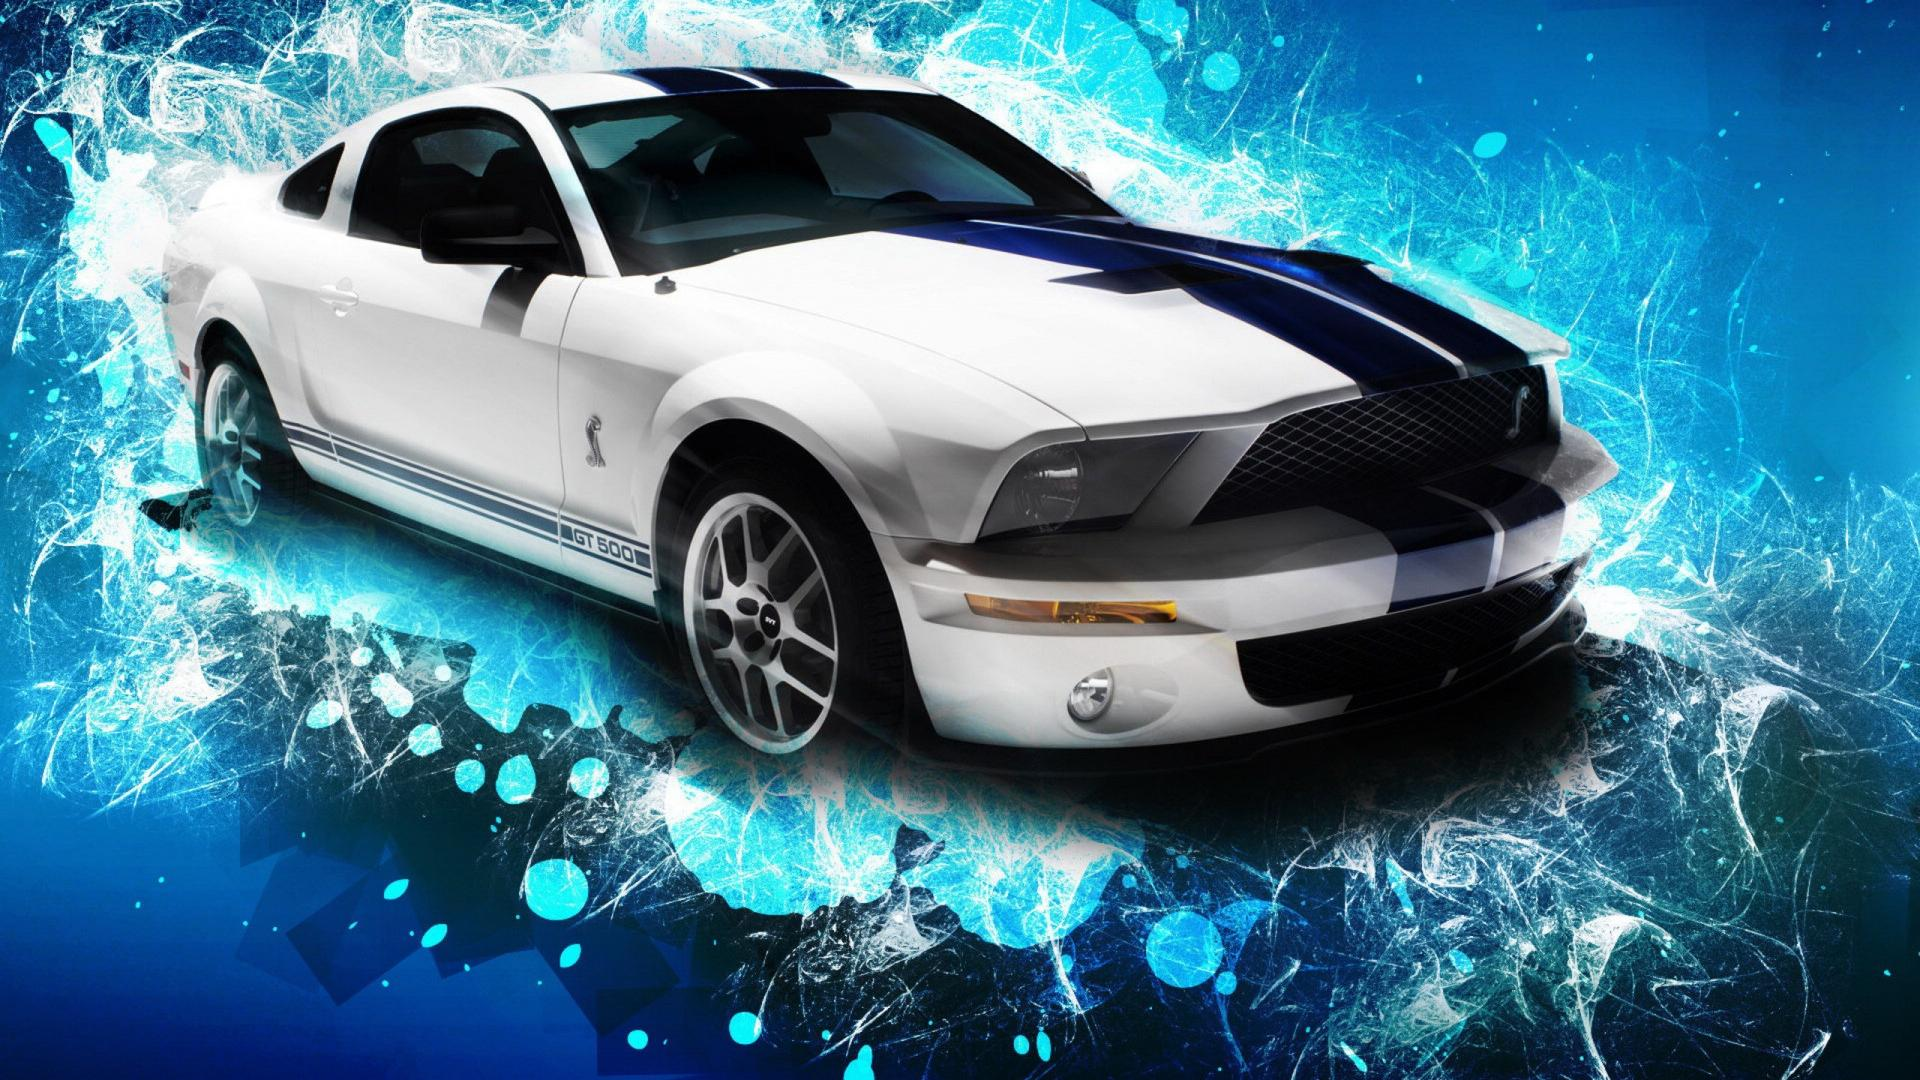 Cool Cars Backgrounds wallpaper   855361 1920x1080